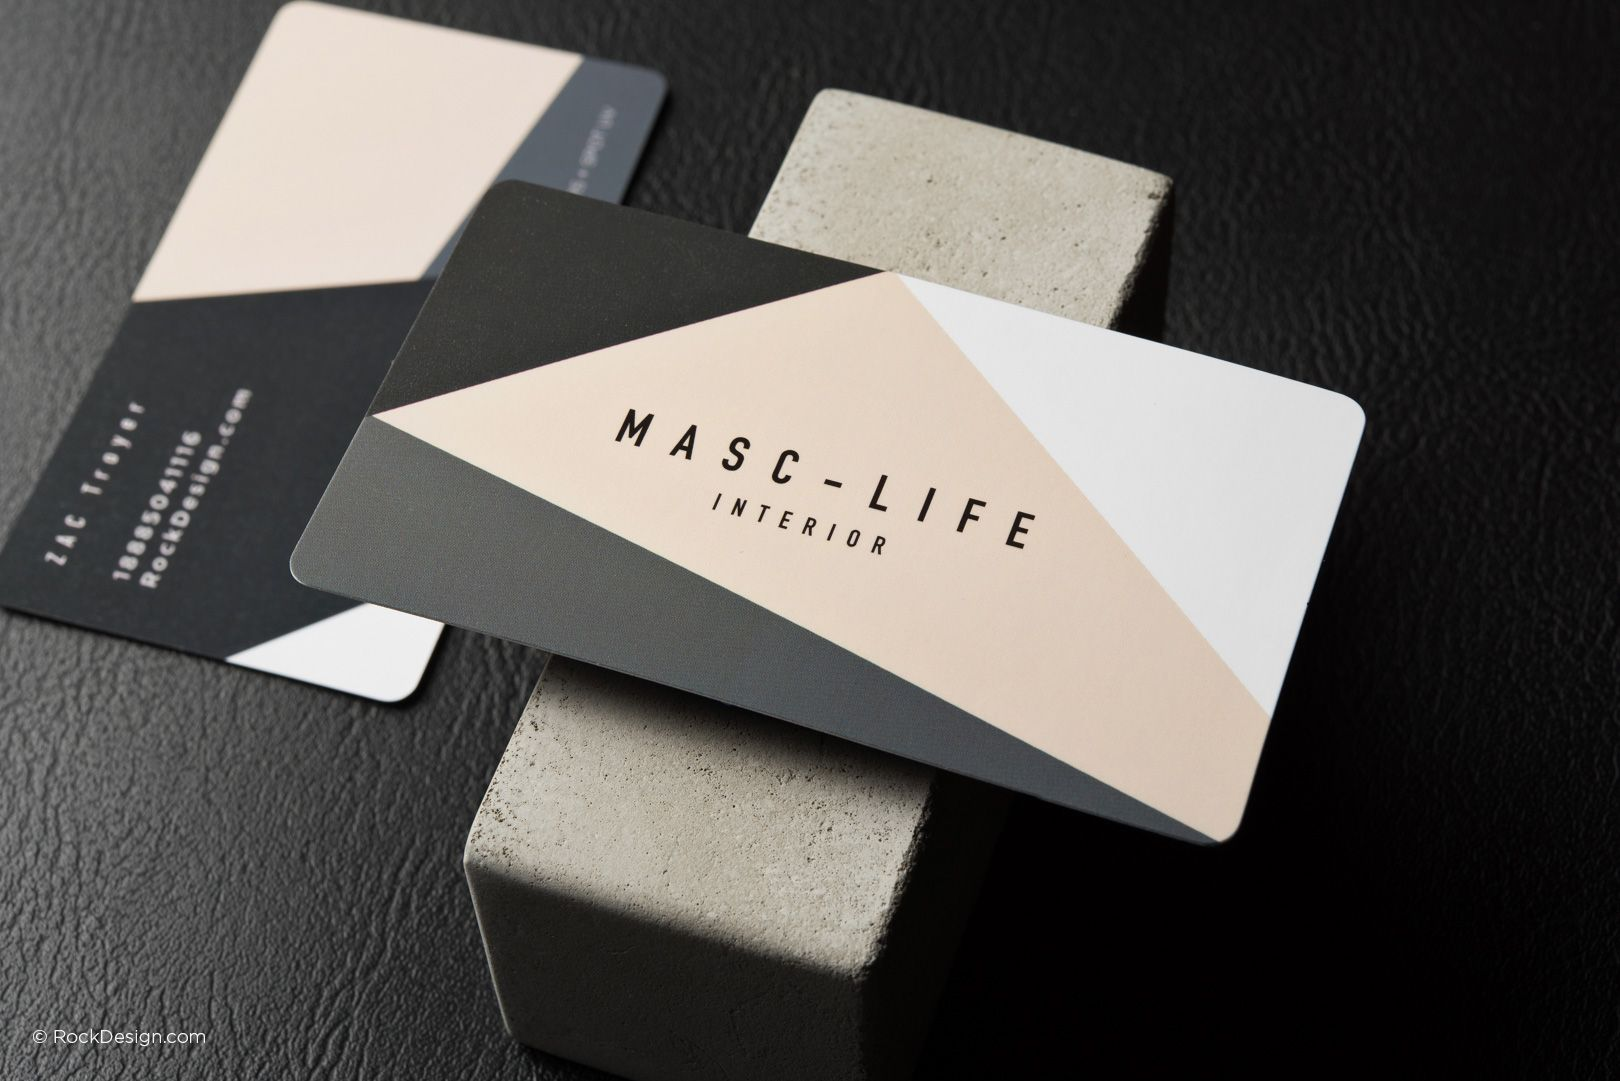 Modern elegant regular suede business card template with spot uv modern elegant regular suede business card template with spot uv masclife rockdesign luxury business colourmoves